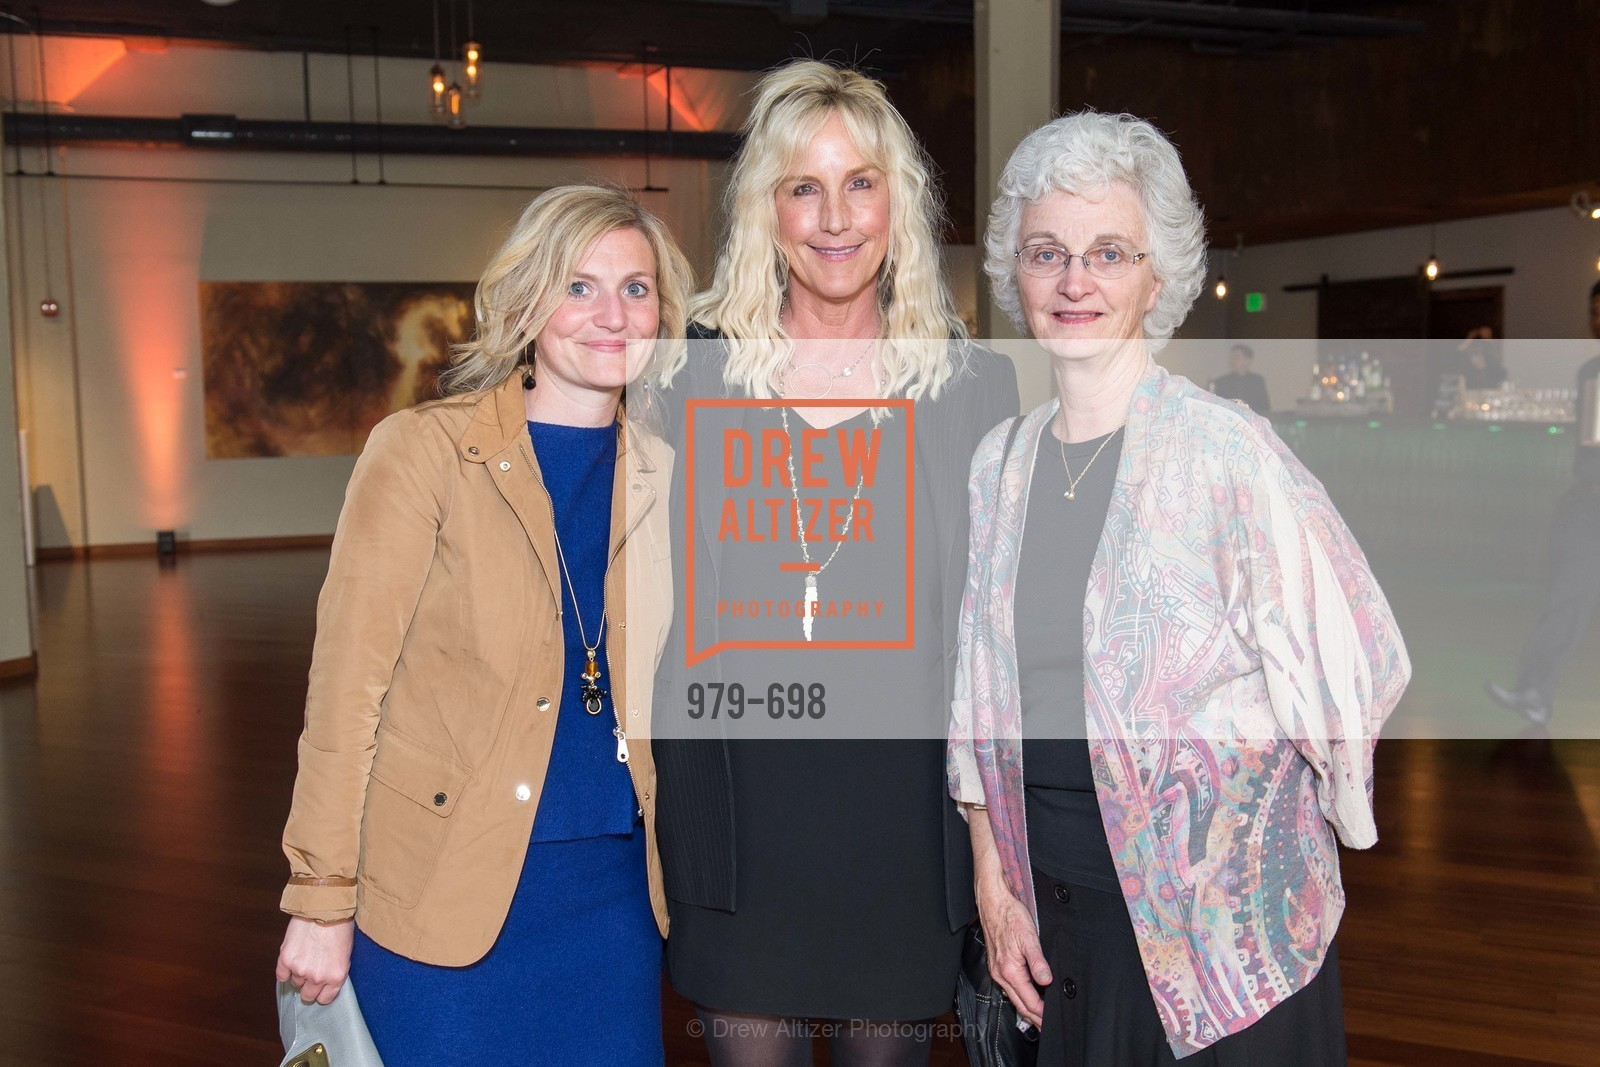 Robyn Komar, Erin Brockovich, Carolyn Lyle, EWG's 6th Annual Earth Dinner, US, May 6th, 2015,Drew Altizer, Drew Altizer Photography, full-service agency, private events, San Francisco photographer, photographer california